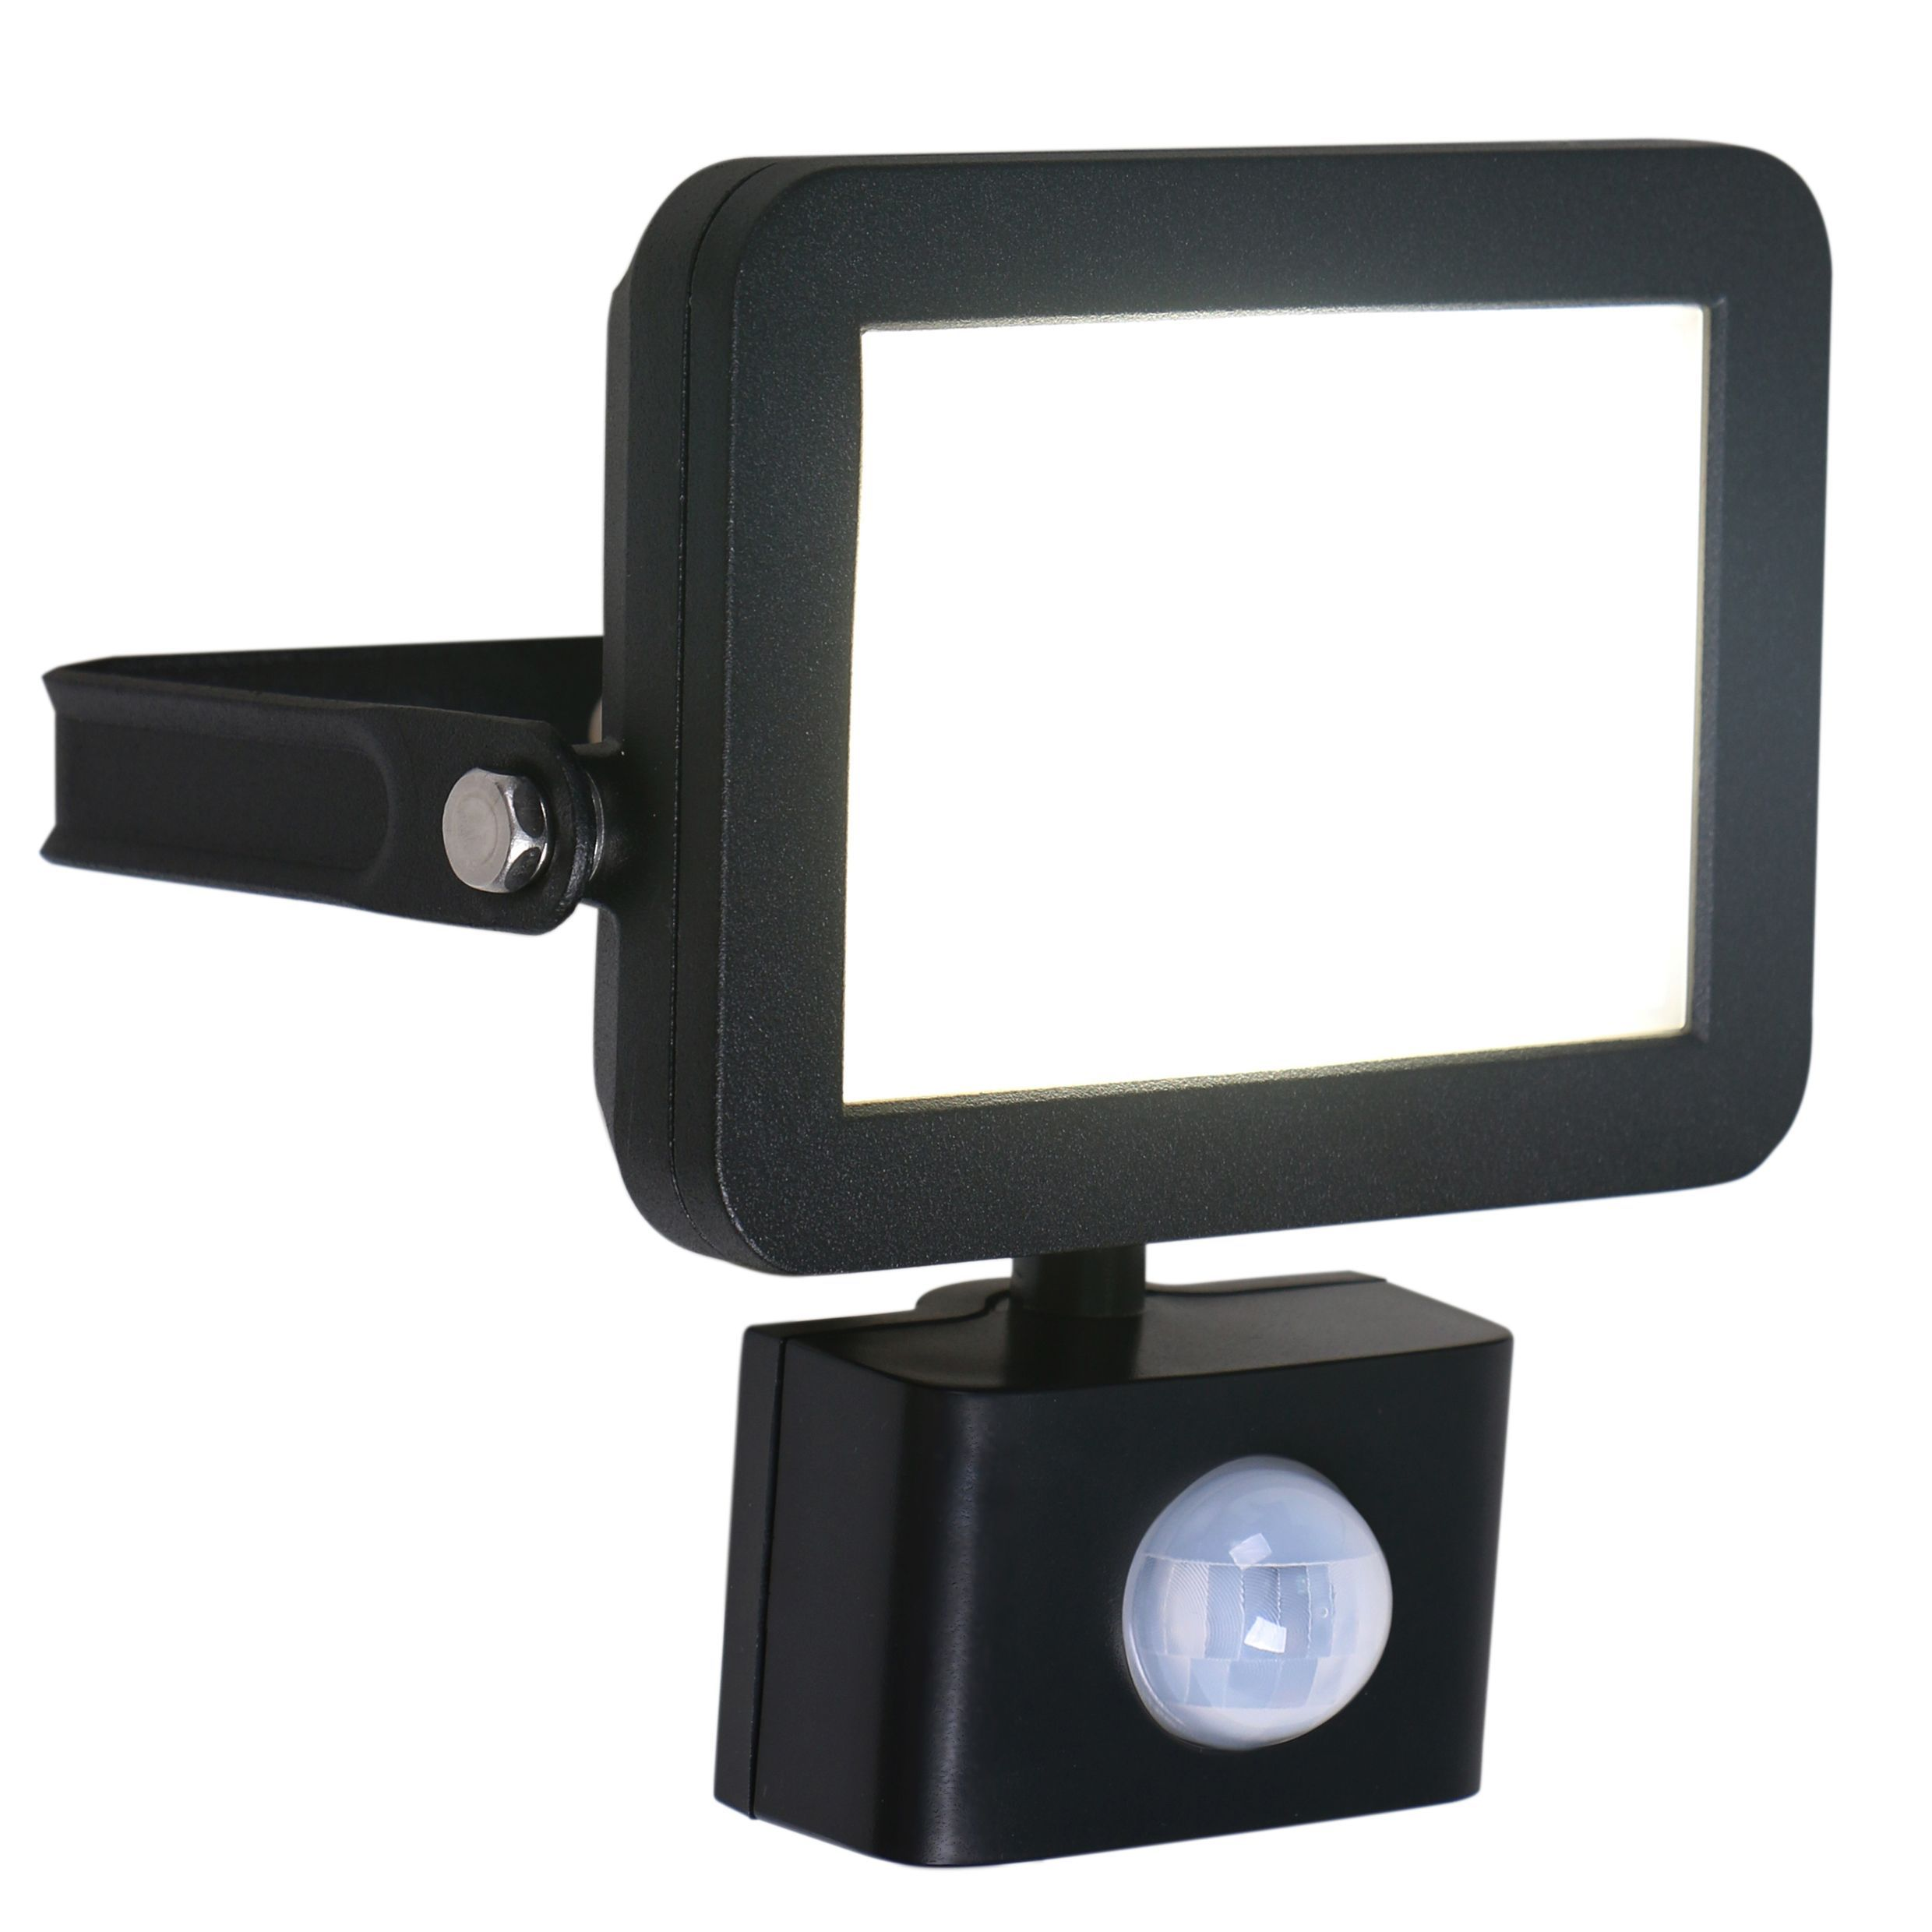 sensor light really decorative motion encourage picture for awesome to pertaining fresh best outdoor lights furniture